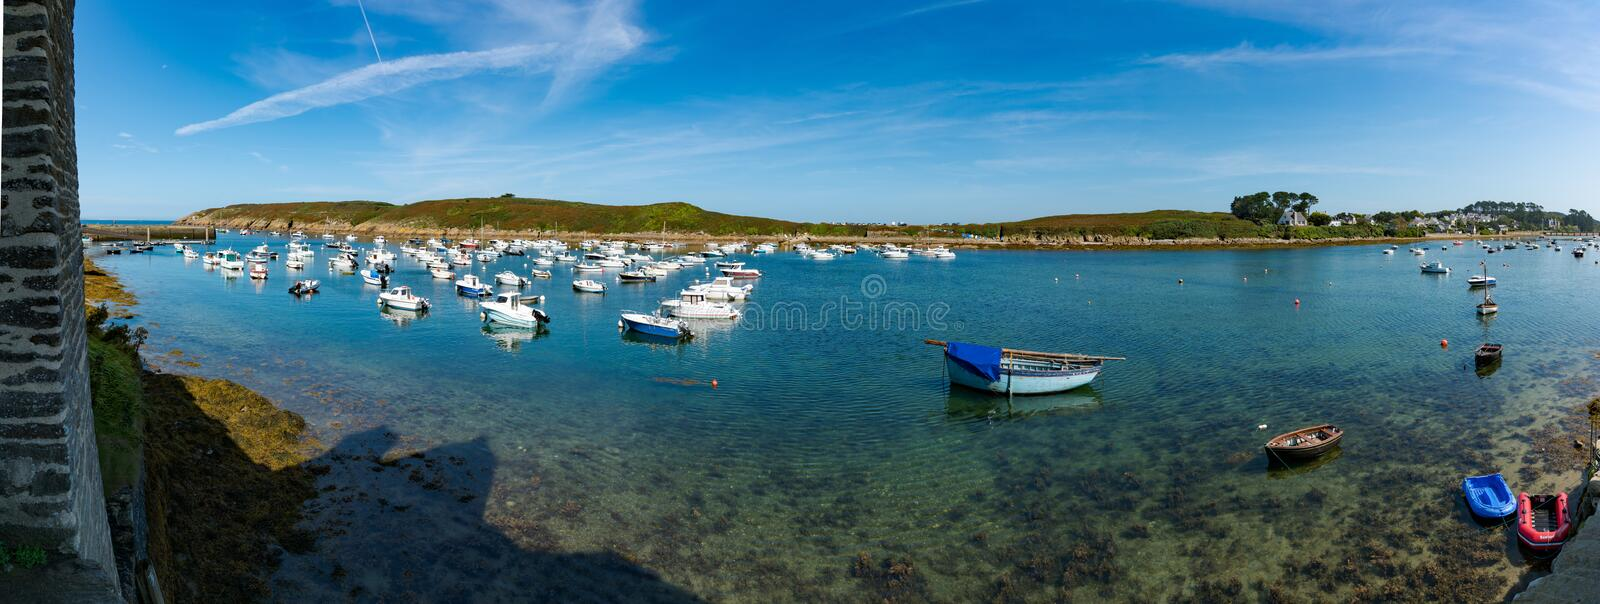 The old harbor and port of La Conquet on the Brittany coast in France royalty free stock photo